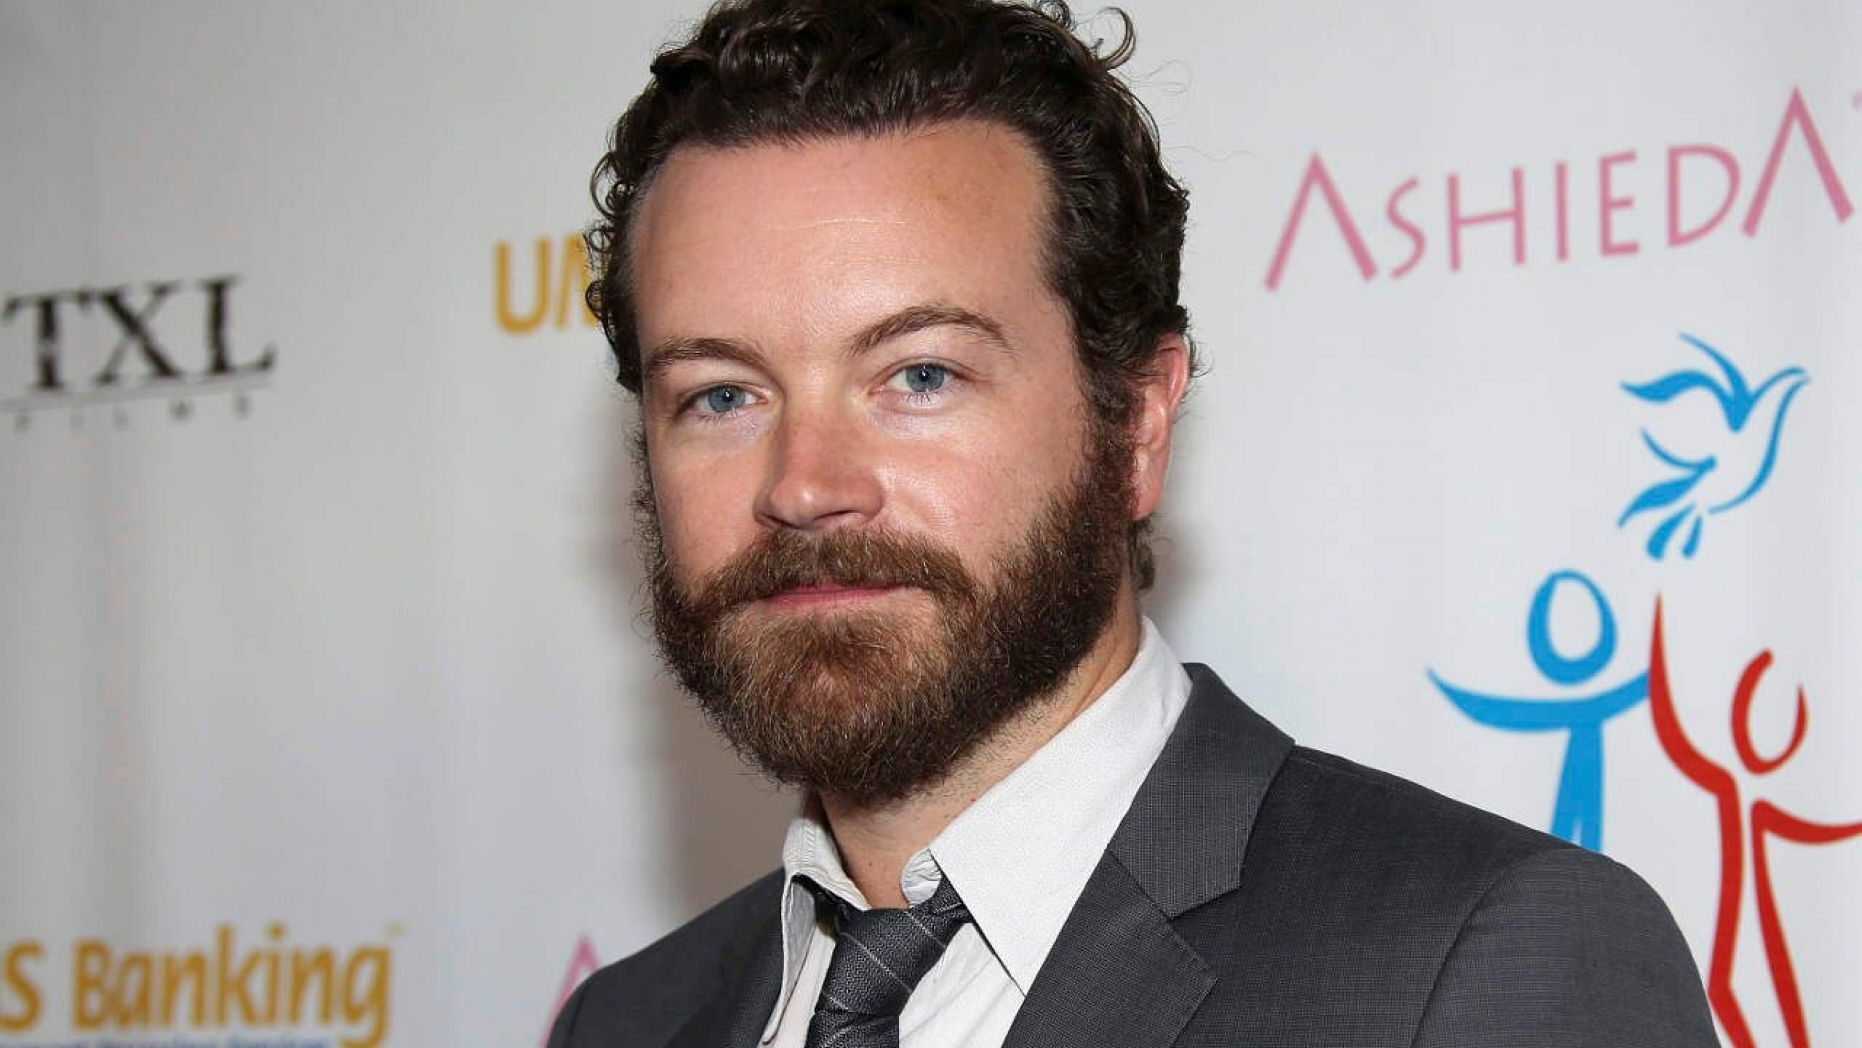 Danny Masterson pleads not guilty to rape charges - Fox News